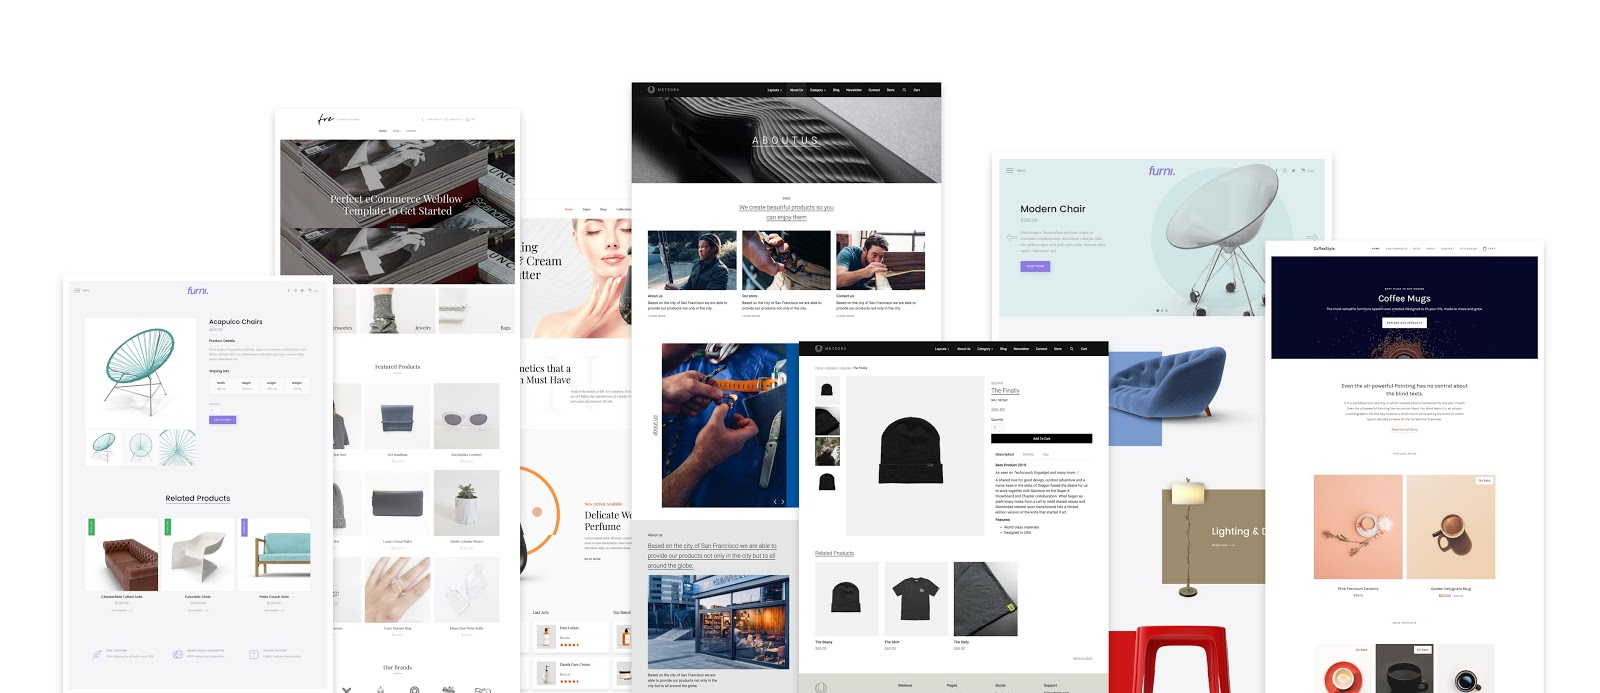 We've released a mix of free and paid ecommerce templates just in time for the beta.